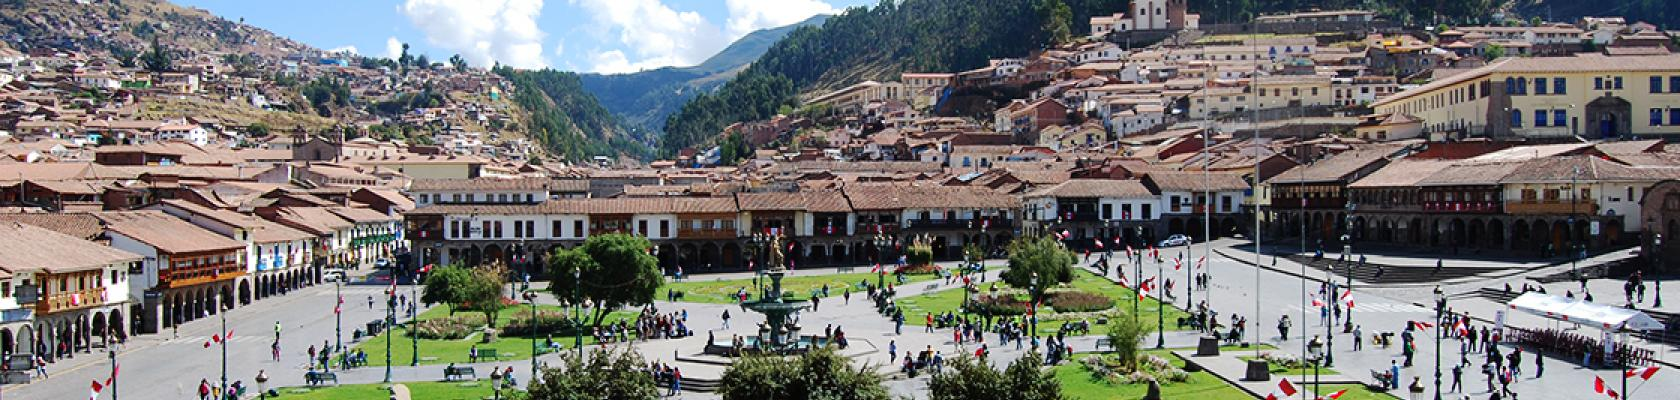 Peru, Cuzco, main square, city